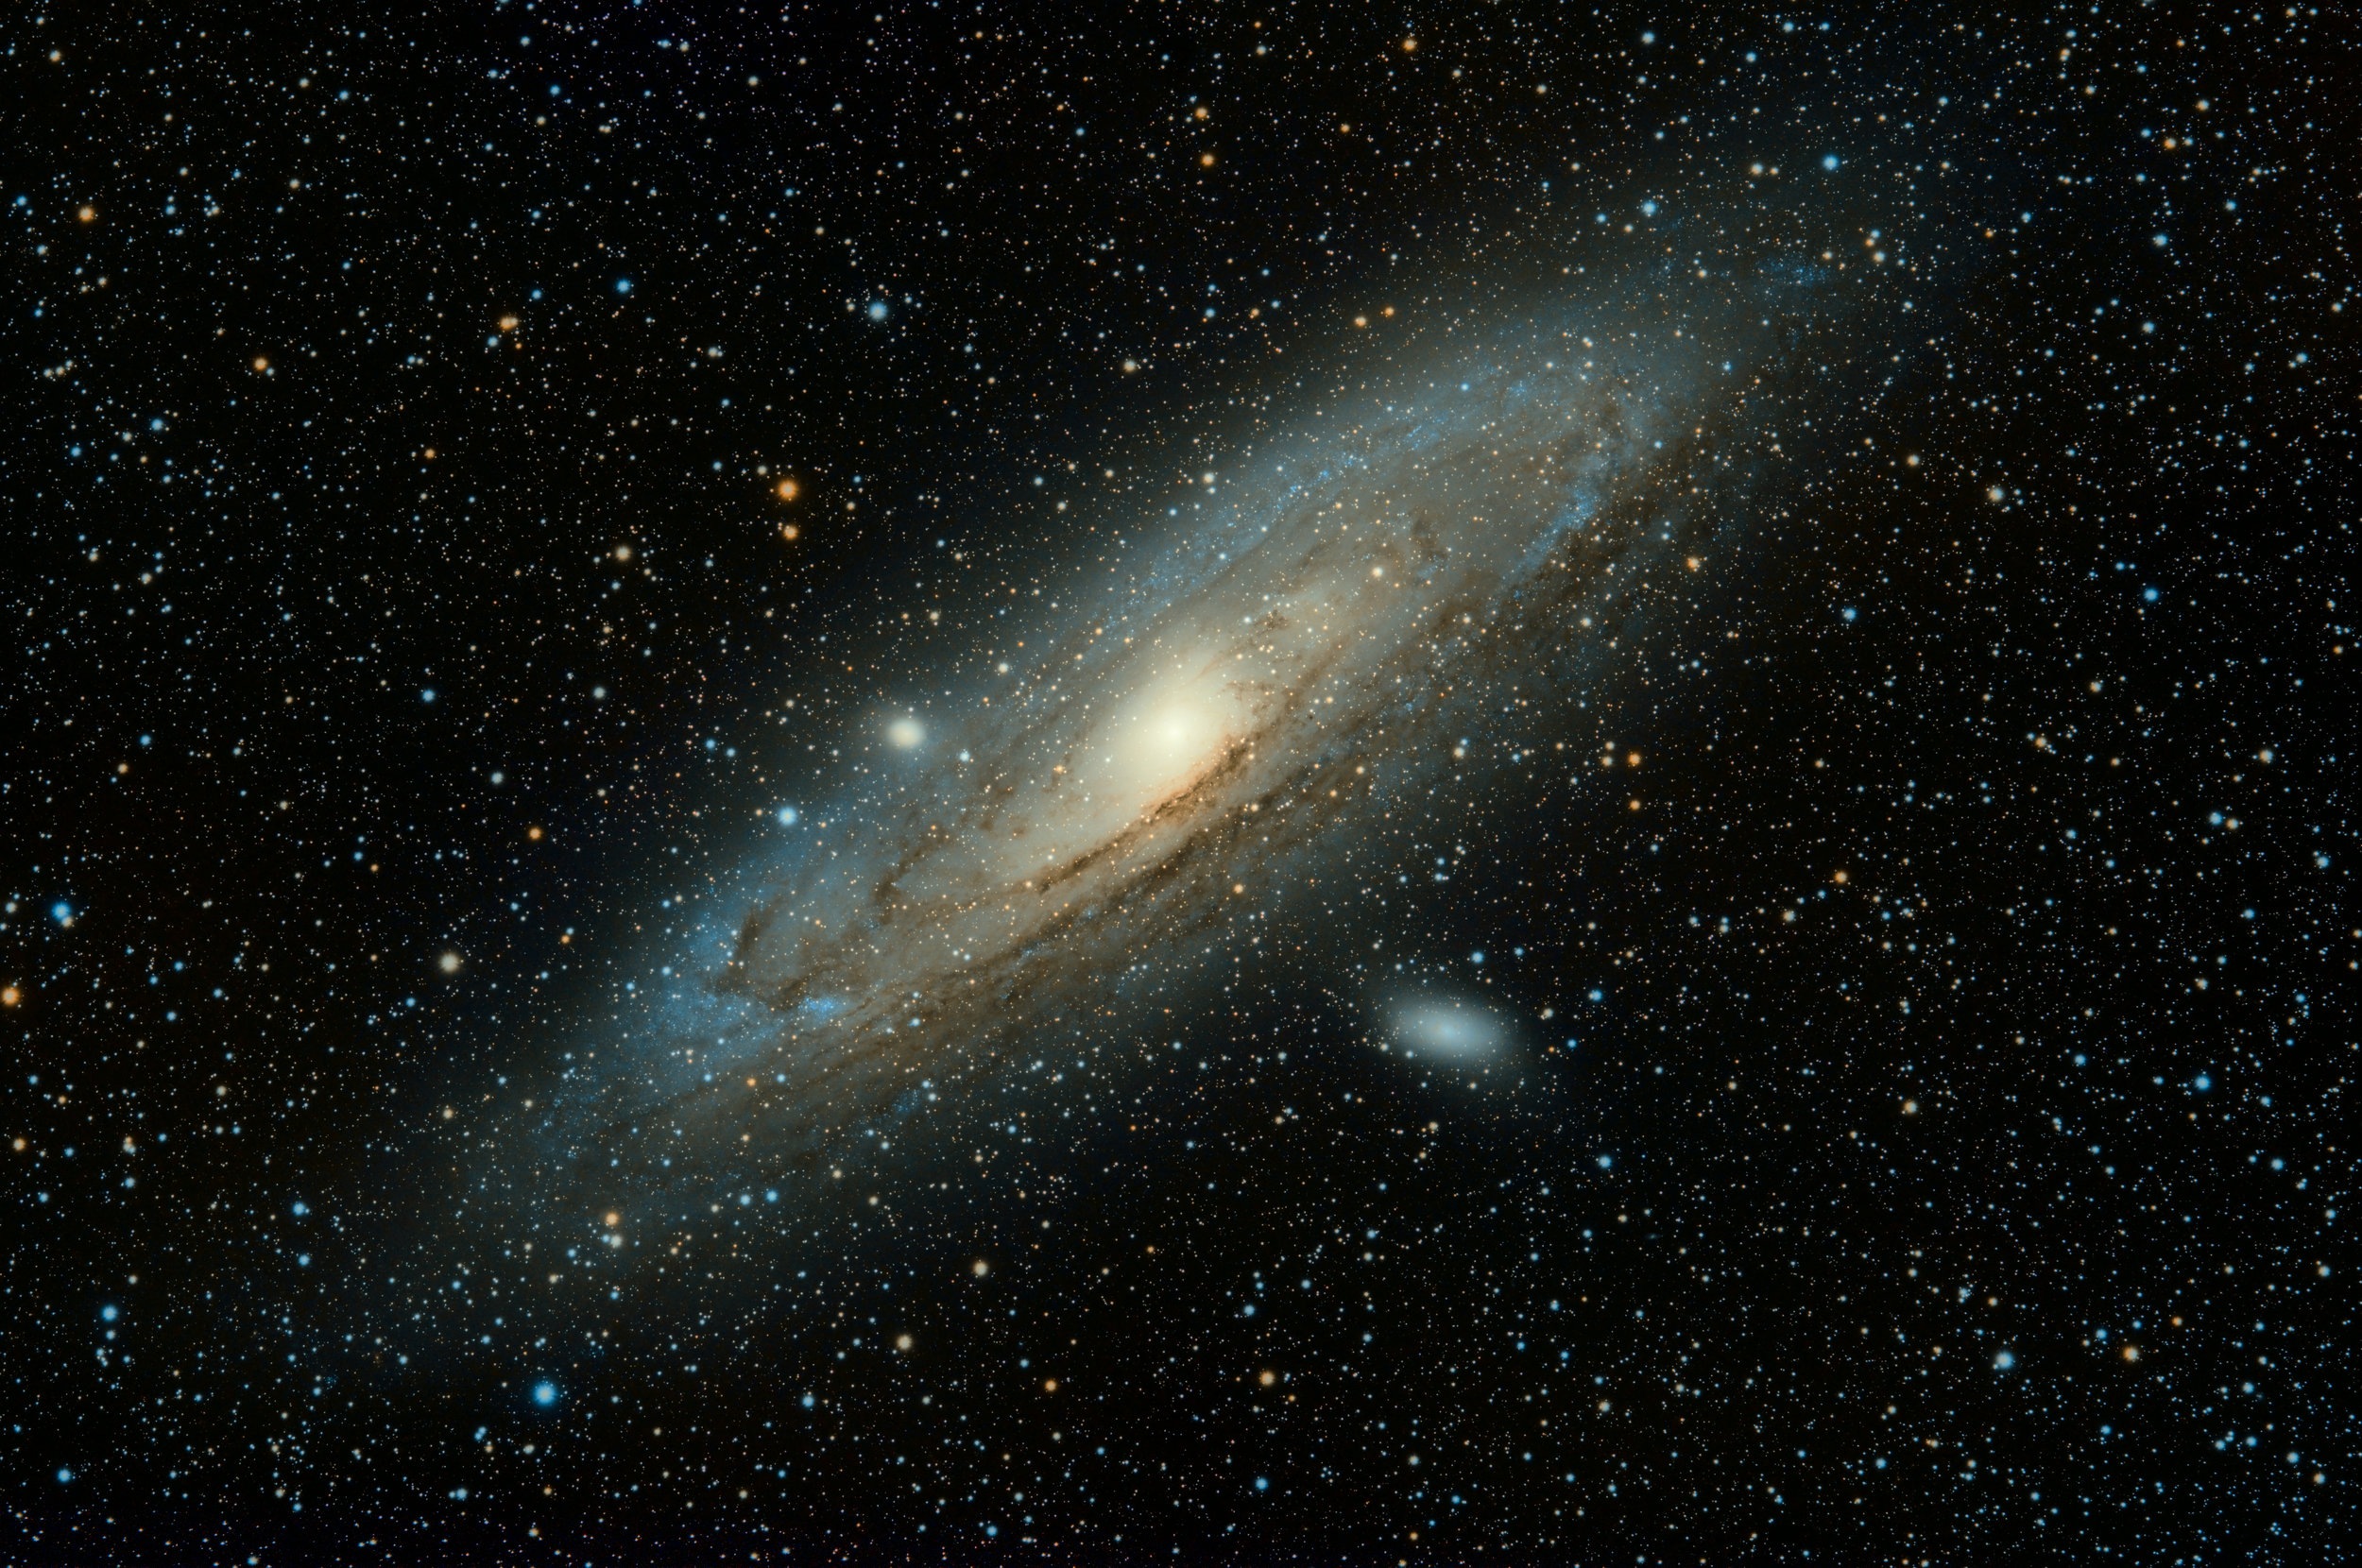 Now that you've seen an apple, describe how the gravitational field of Andromeda will affect the orbital of planets on the rim of the Milky Way as Andromeda draws closer. Any complaints?